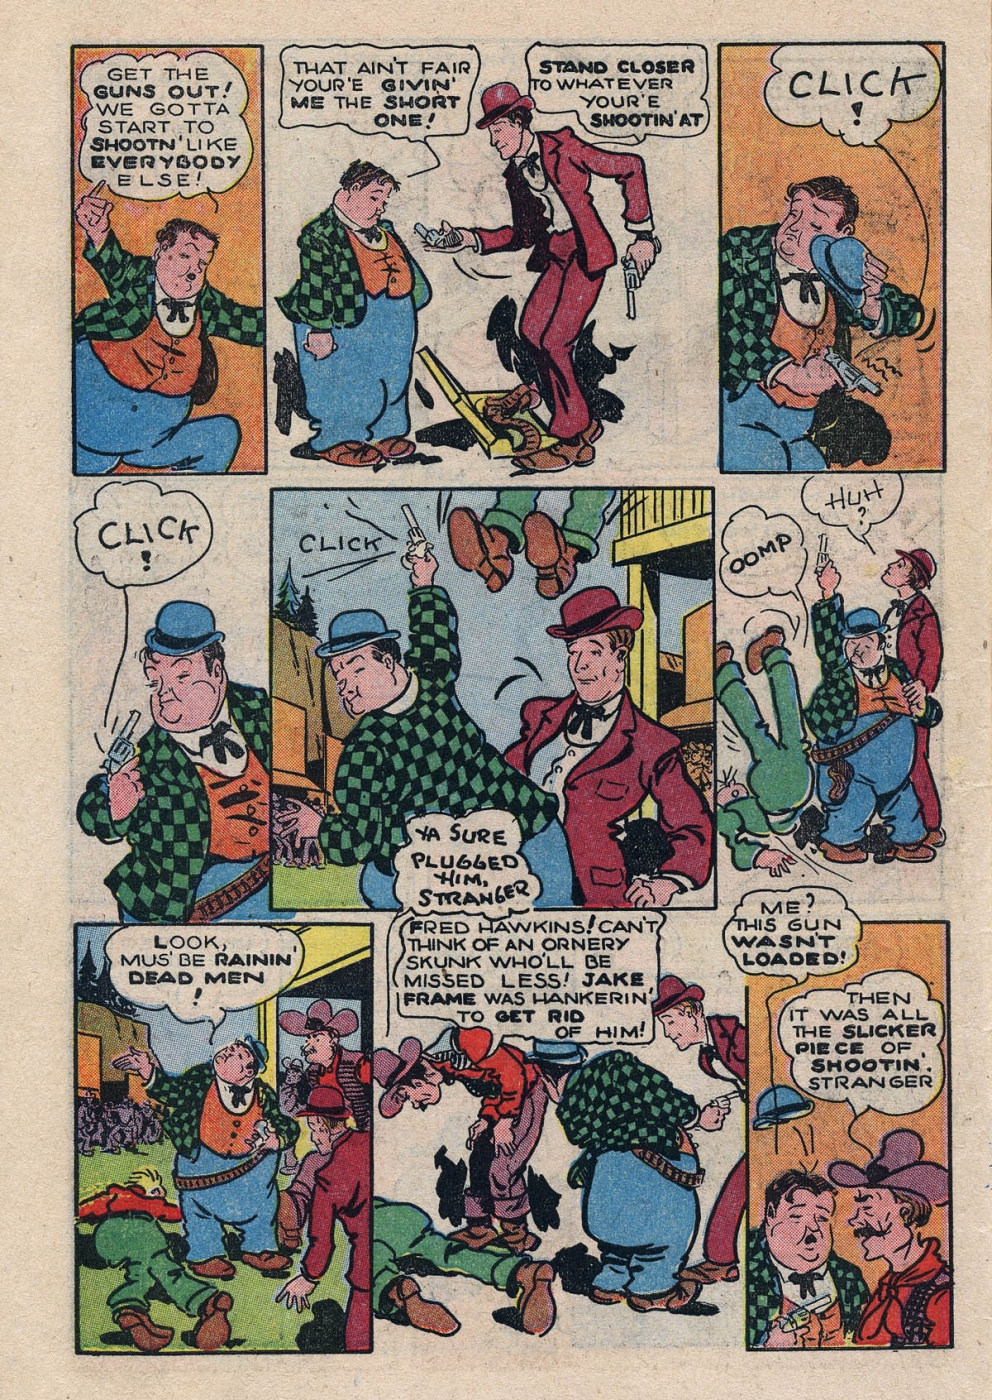 Funny Comic Strips - Abbott and Costello 001 (Feb 1948) 6